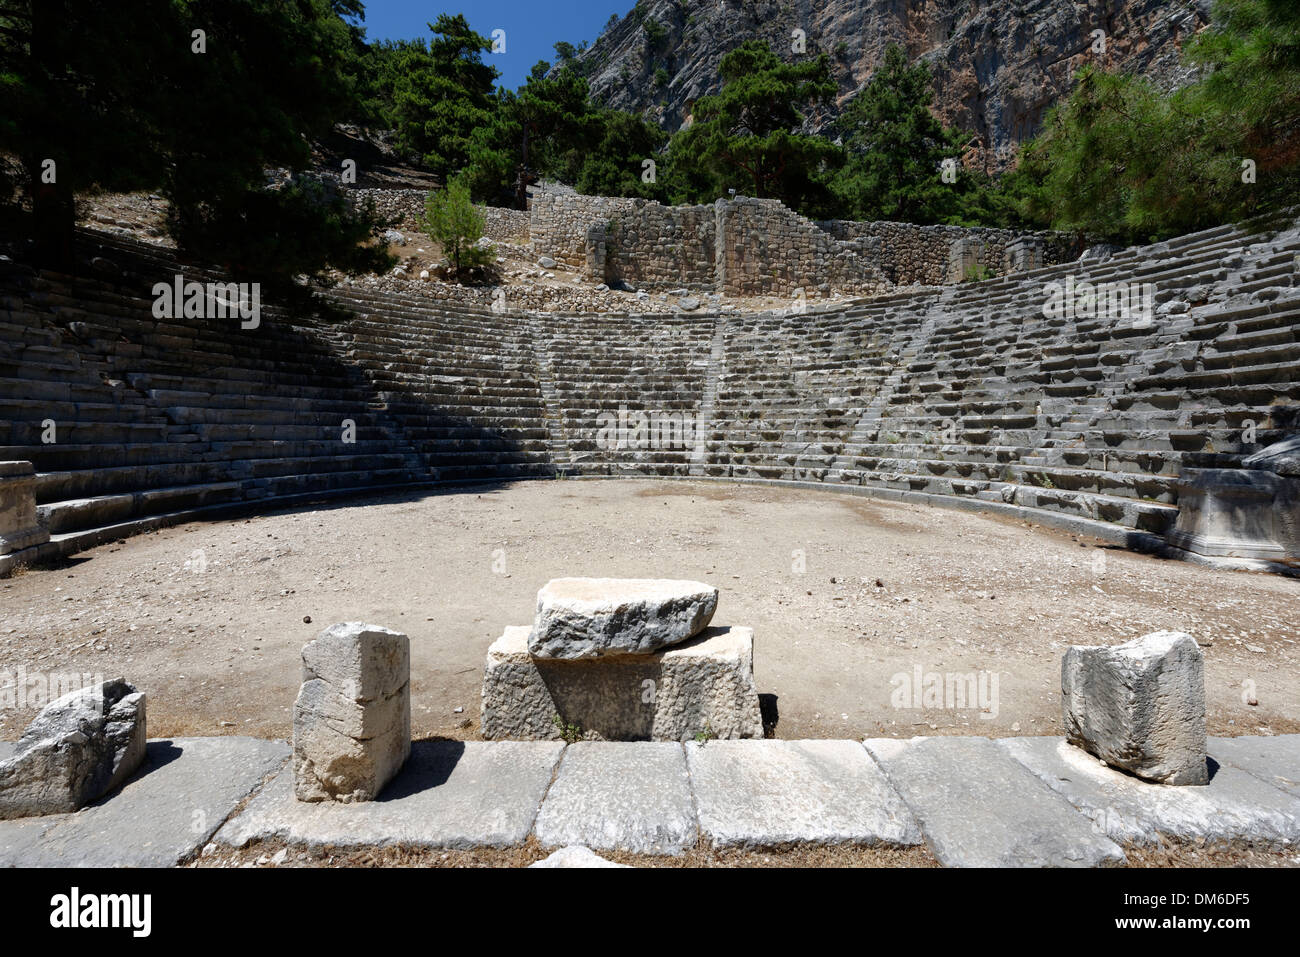 The Greek styled ancient Hellenistic theatre at the Lycian city of Arykanda, in the Antalya province of Southern Turkey. - Stock Image